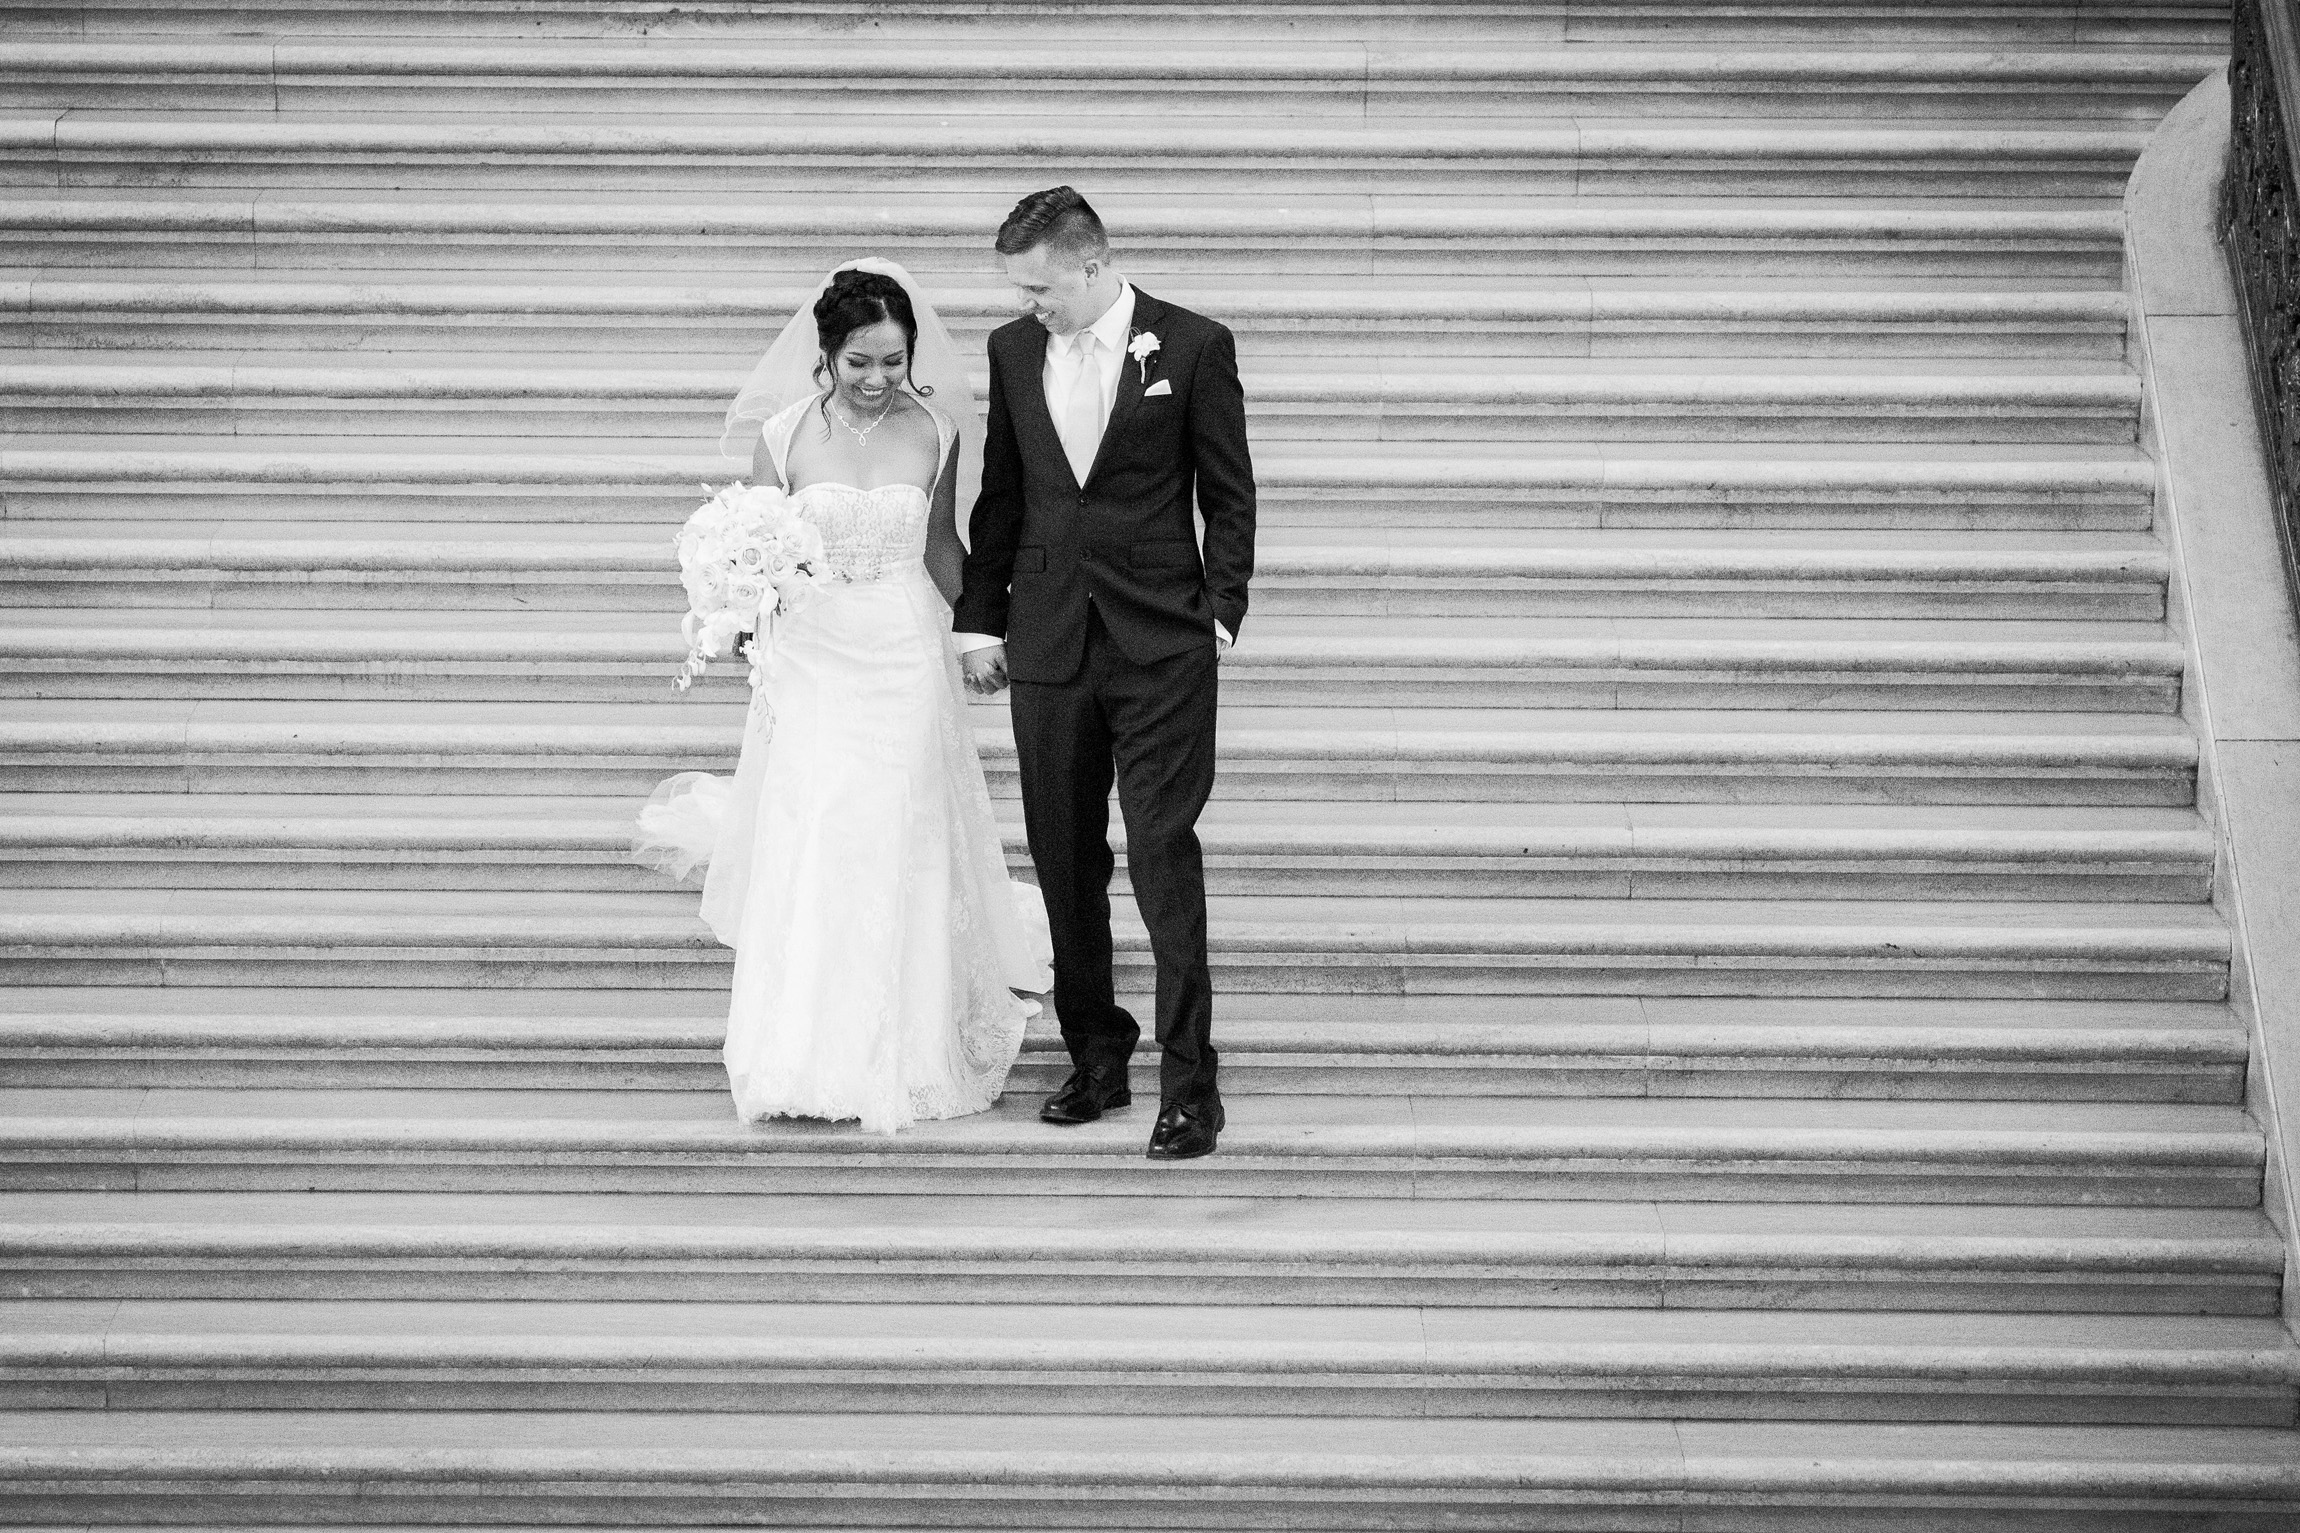 017_janaeshieldsphotography_sanfrancisco_cityhall_weddings.jpg